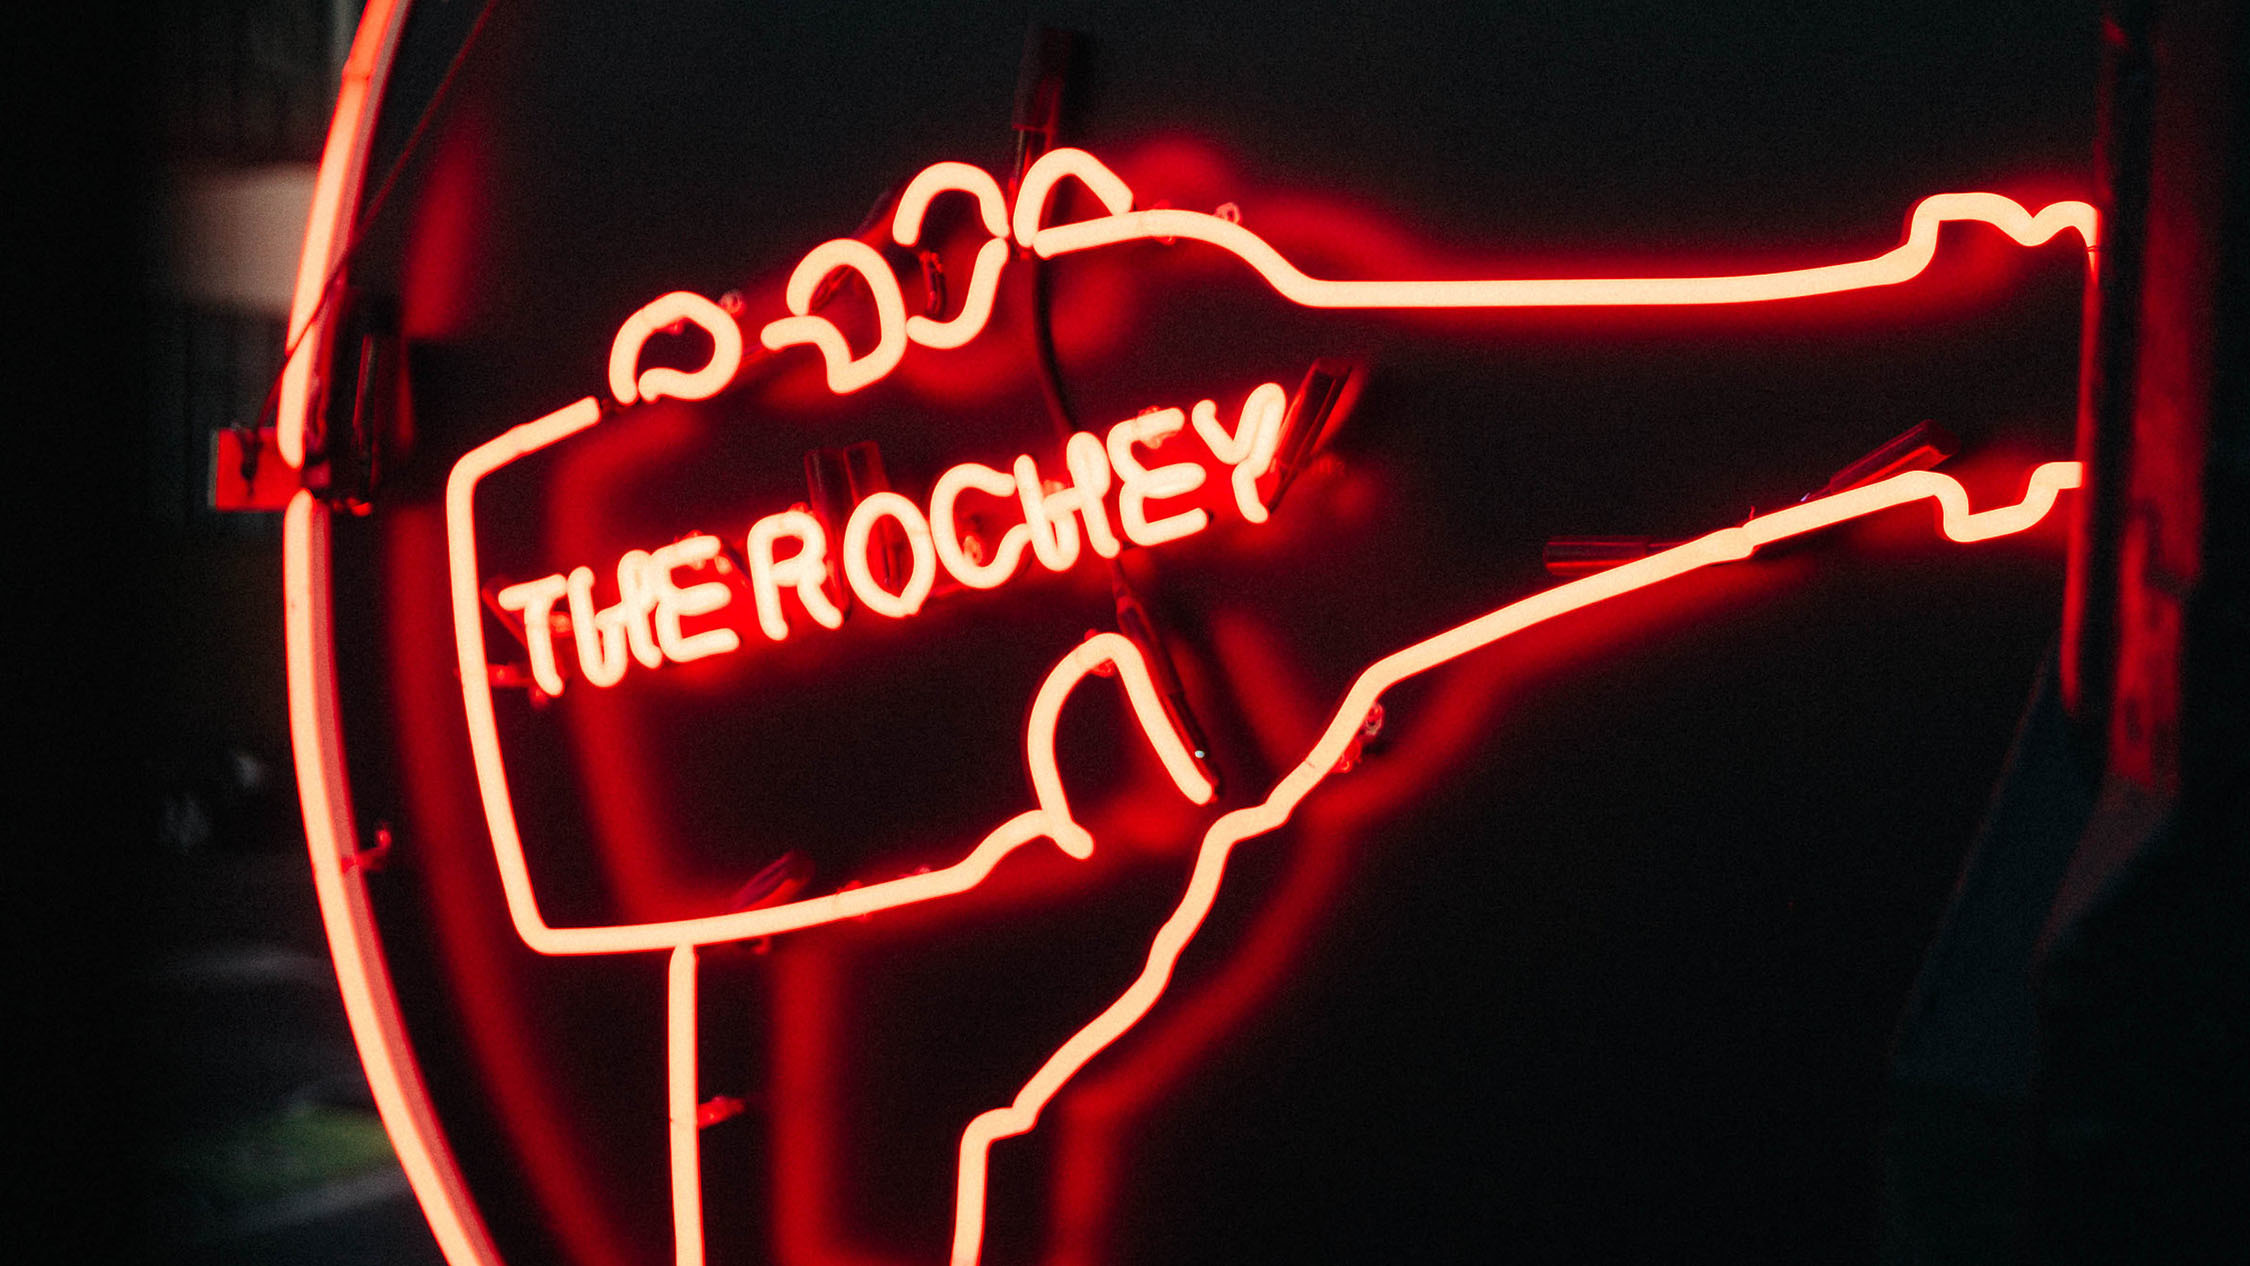 The Rochester Hotel neon signage